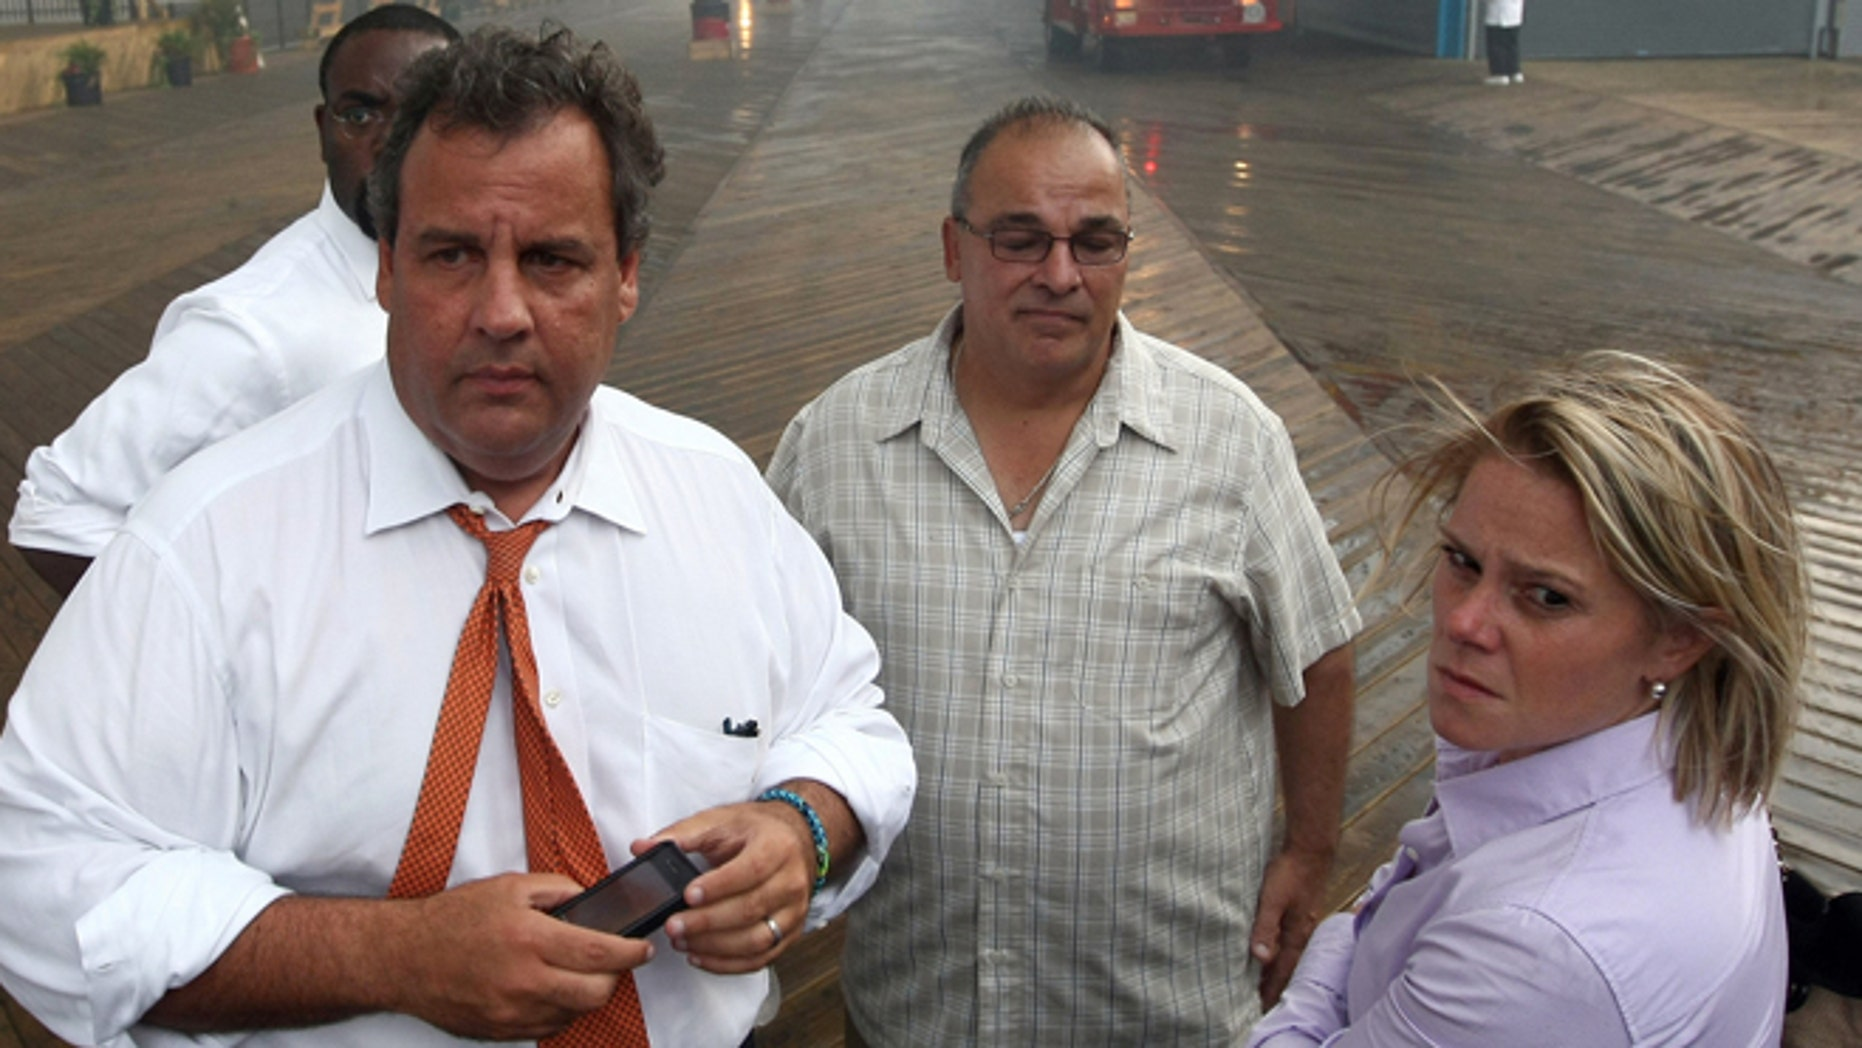 Sept. 12, 2013: Deputy Chief of Staff Bridget Anne Kelly, right, stands with Gov. Chris Christie, left, during a tour of the Seaside Heights, N.J. boardwalk after it was hit by a massive fire.